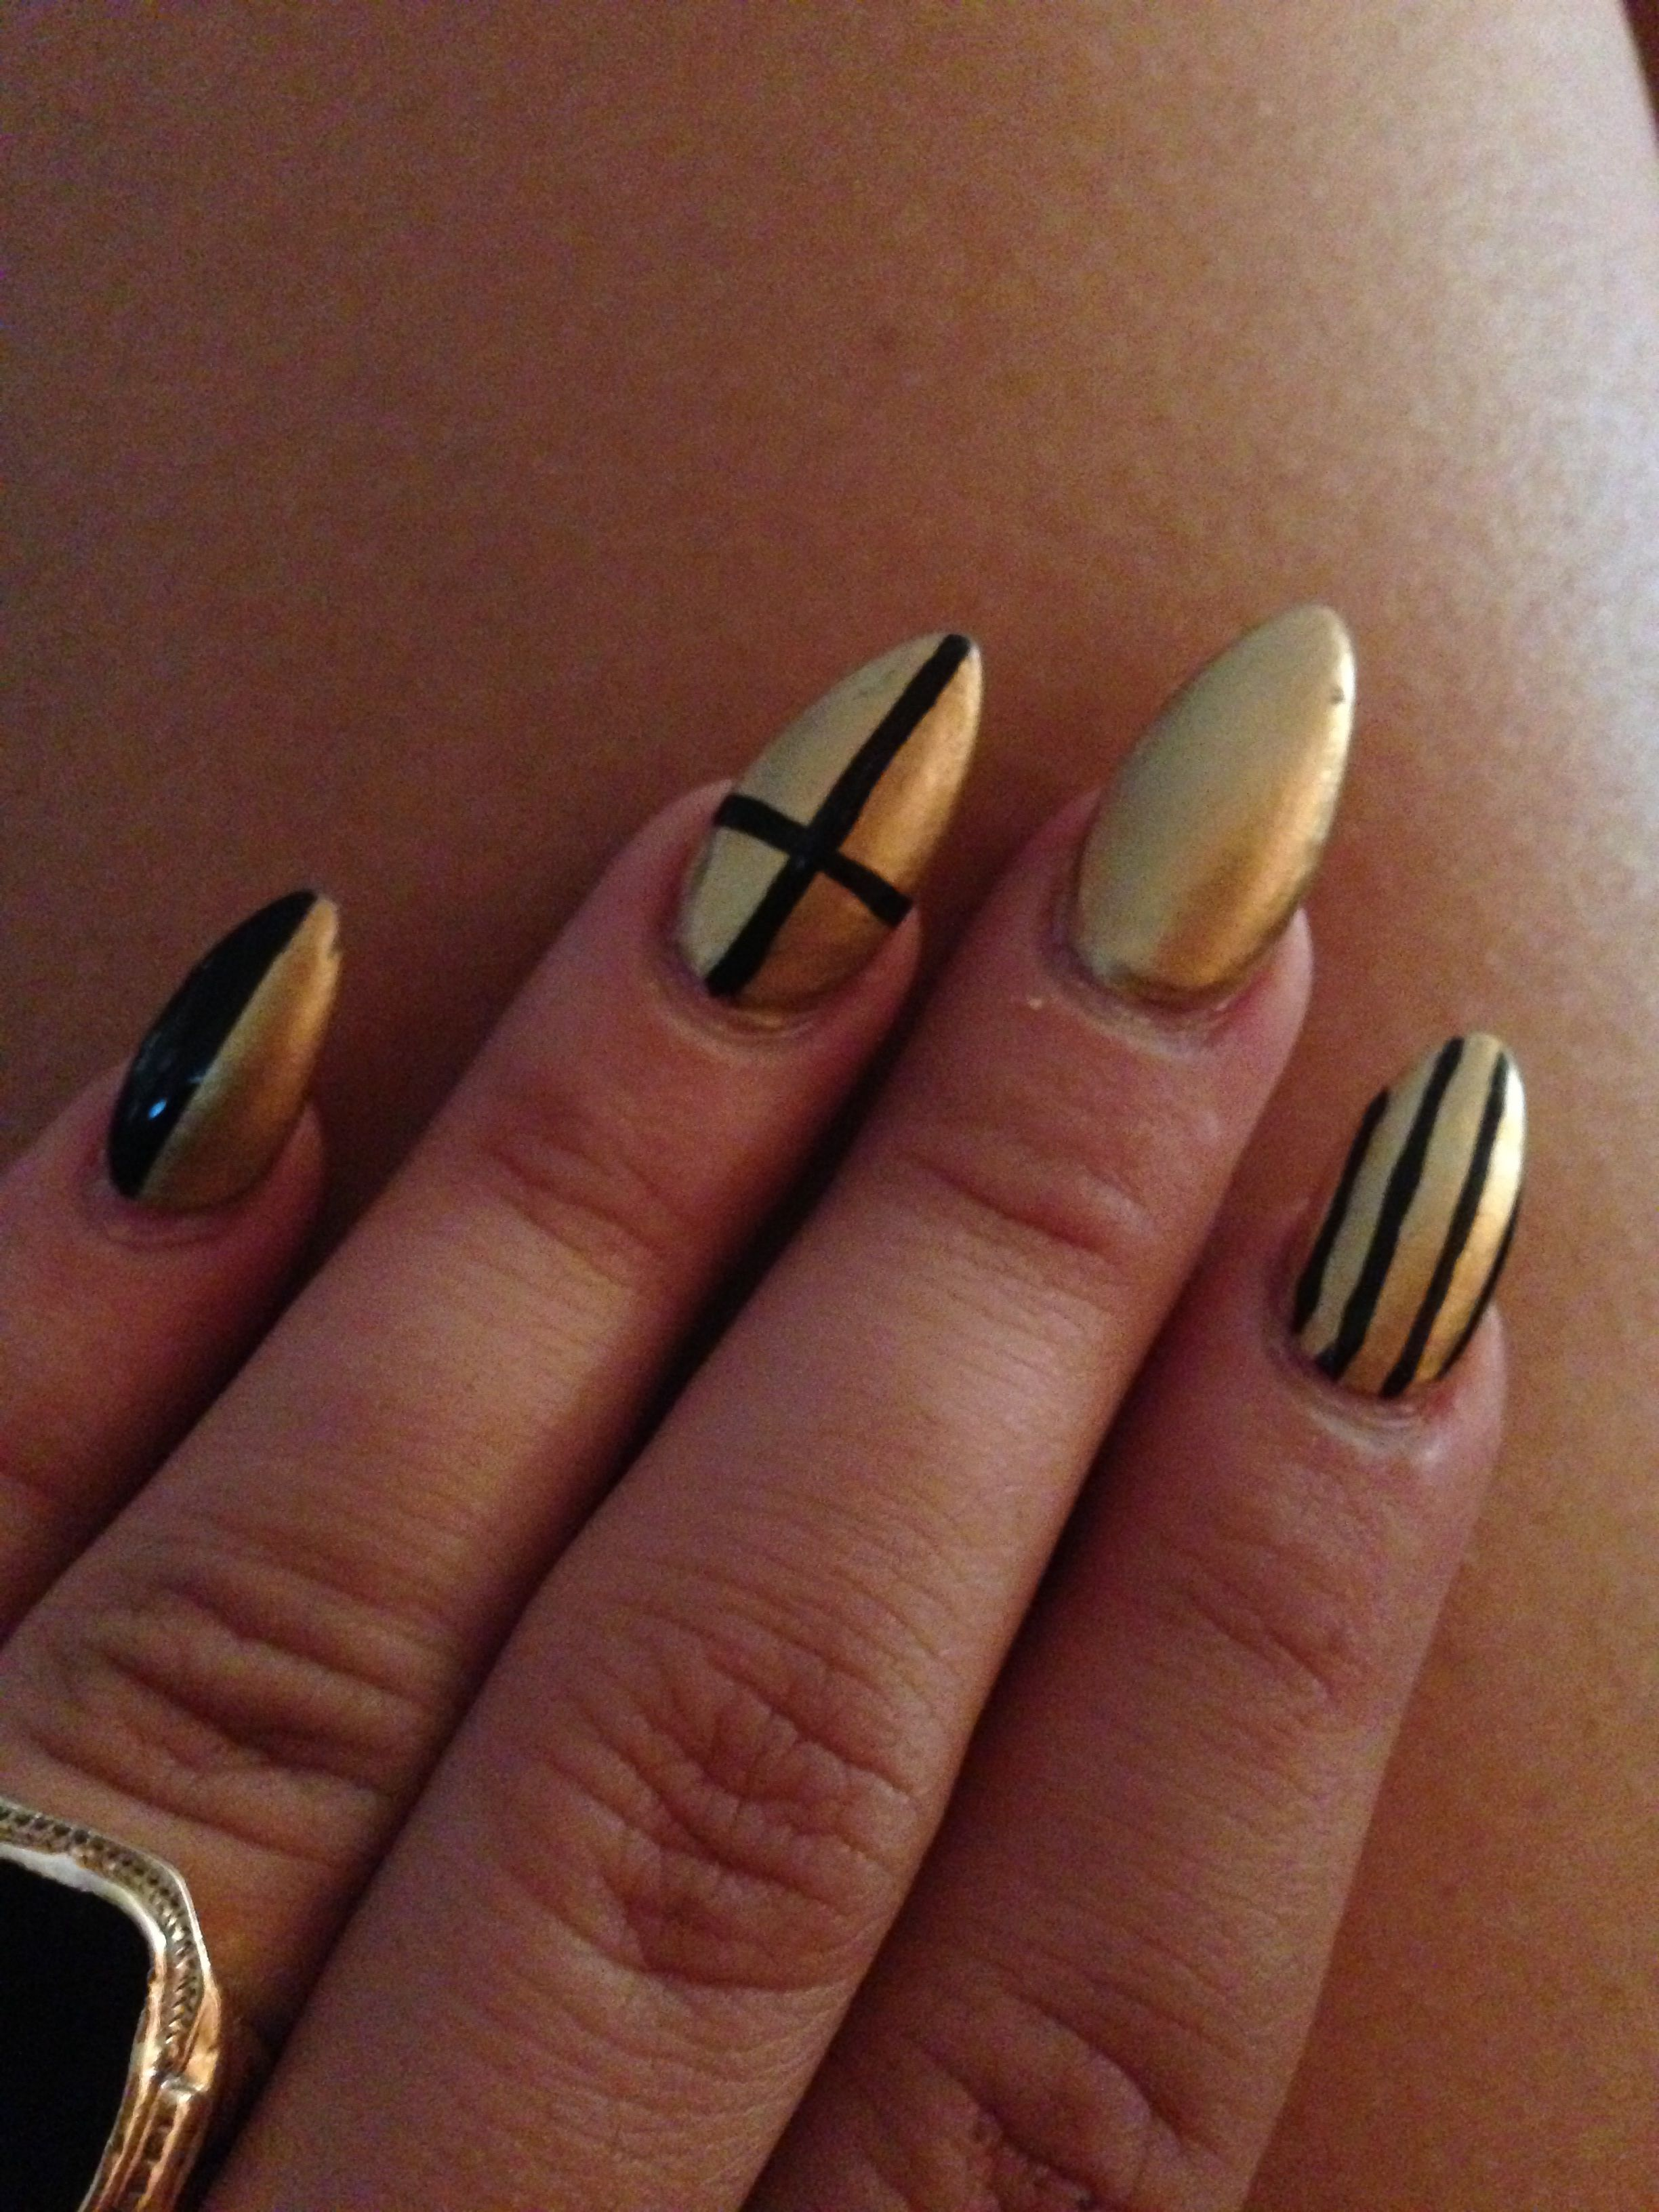 Black&gold stiletto nails Cross nails Striped nails Nail